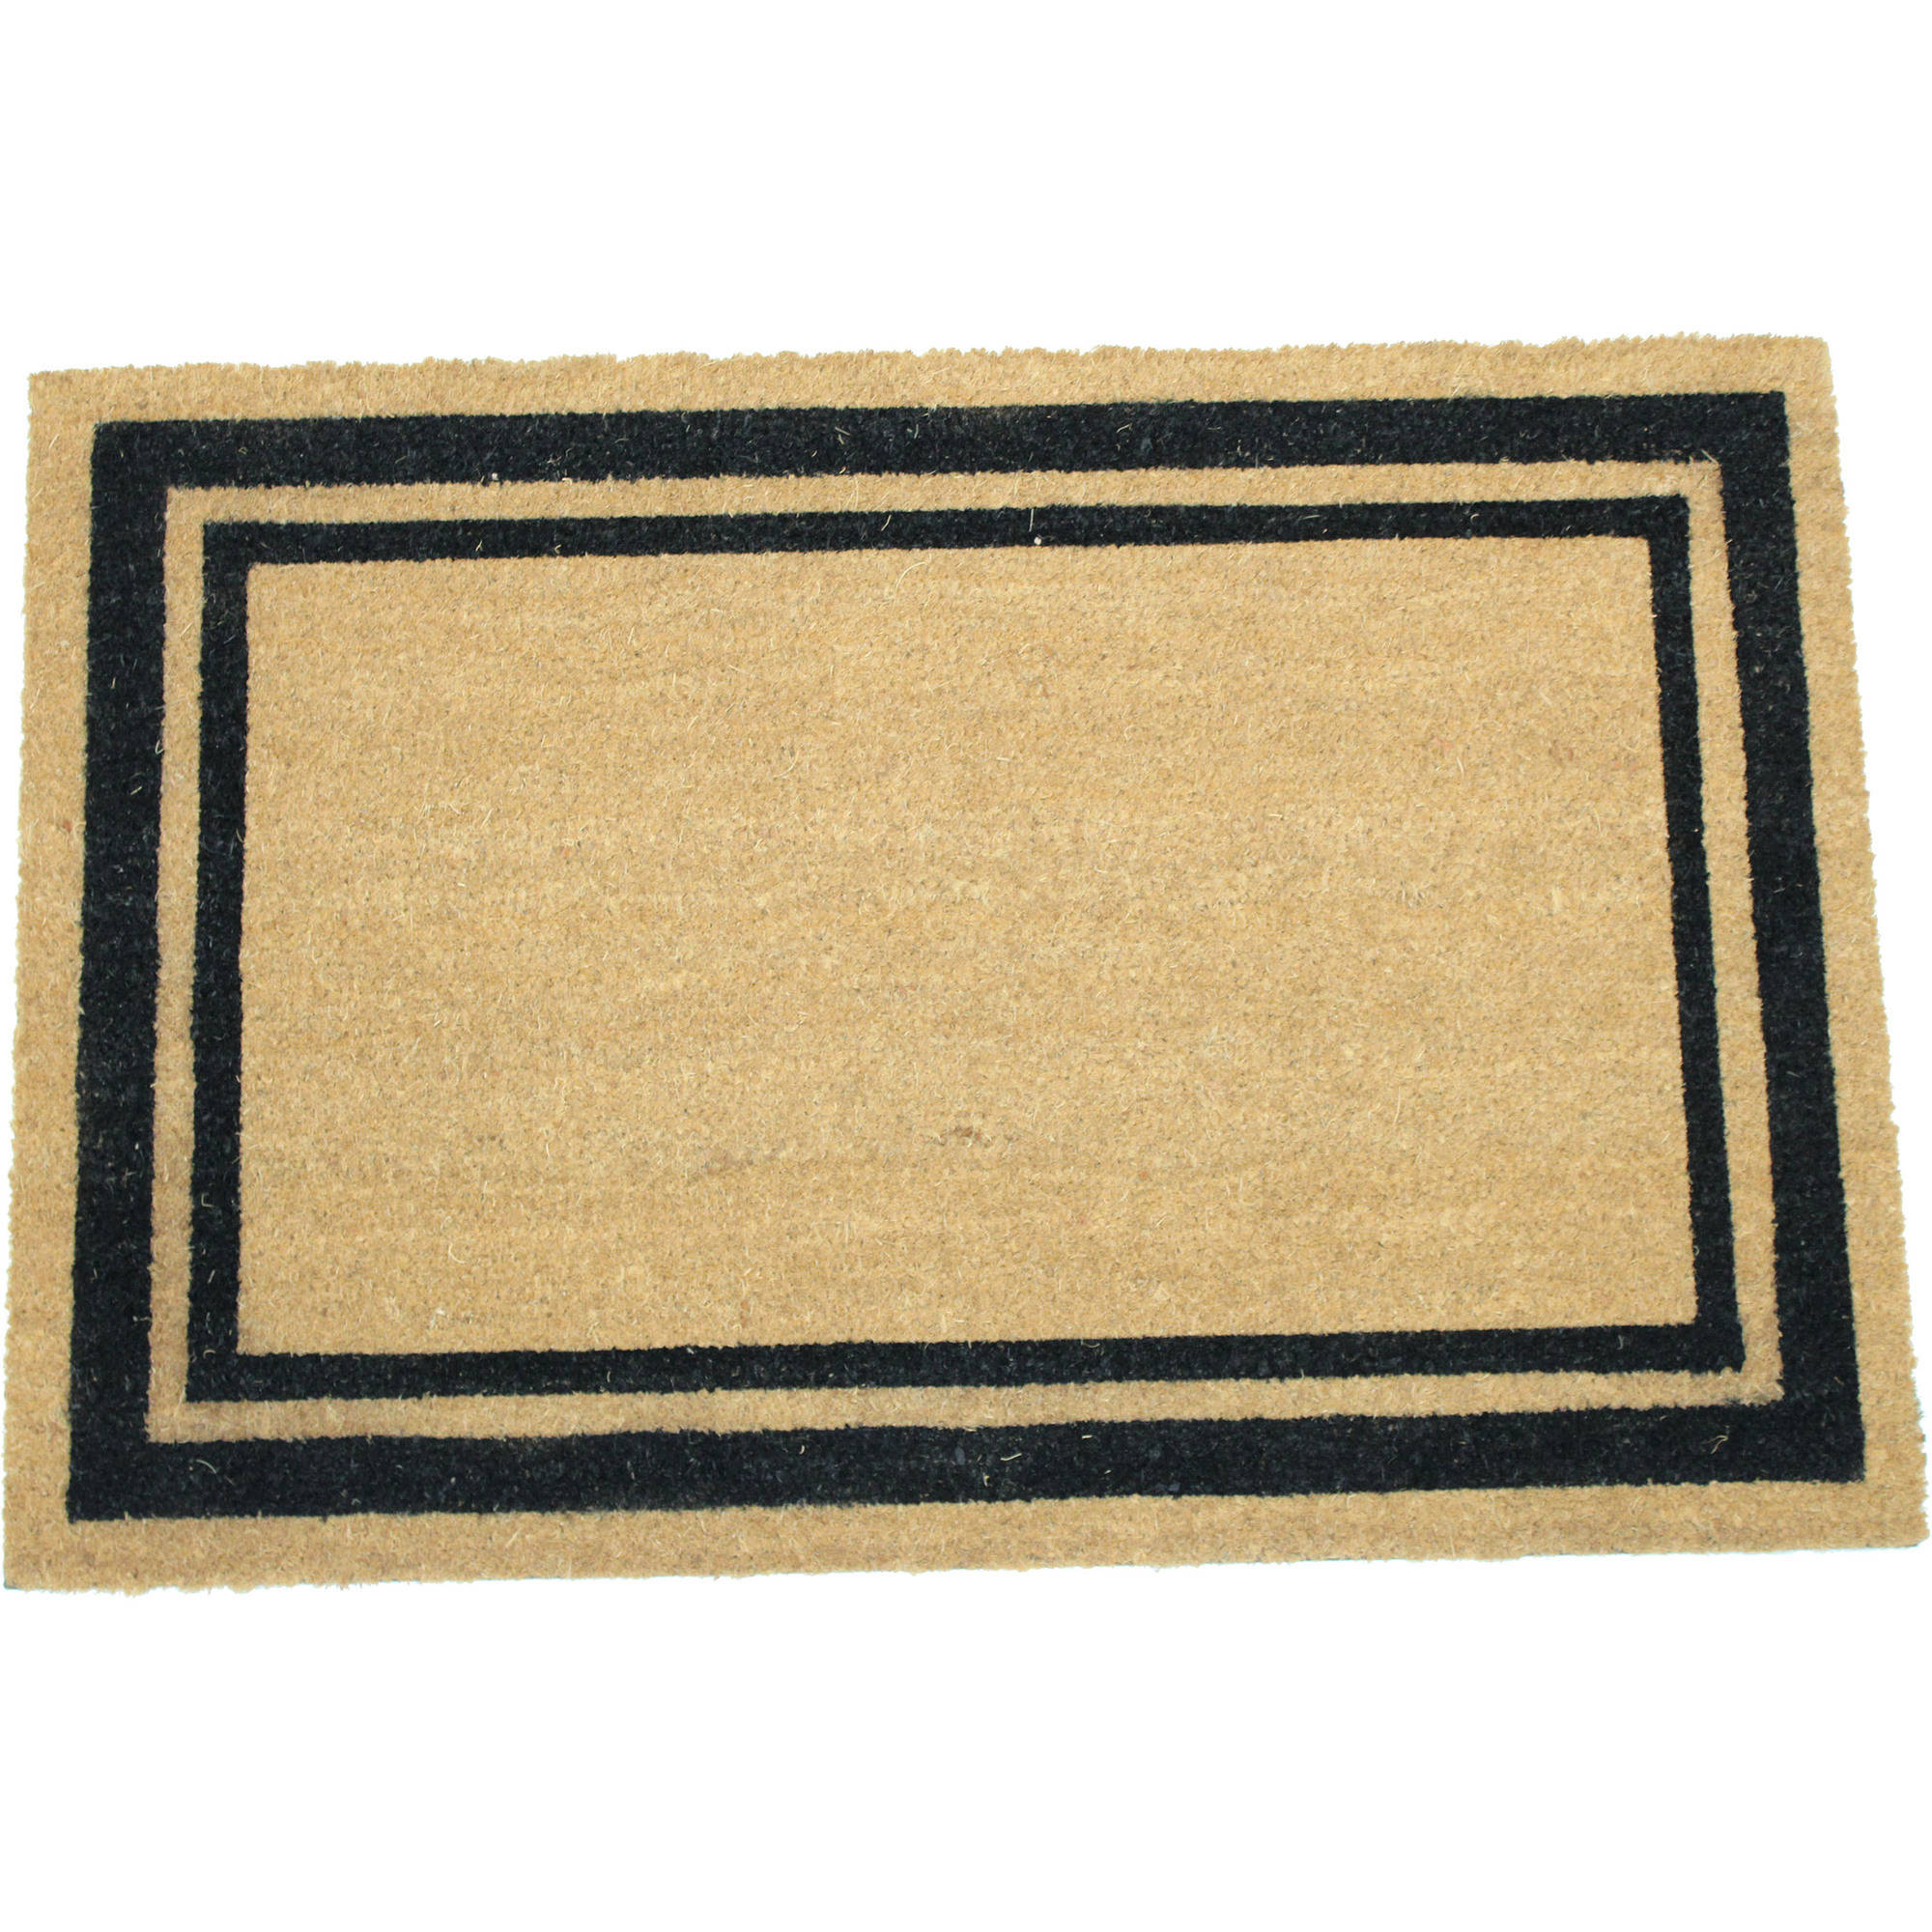 Border Frame 24x36 Inch Printed Coir Doormat by Home Garden Hardware